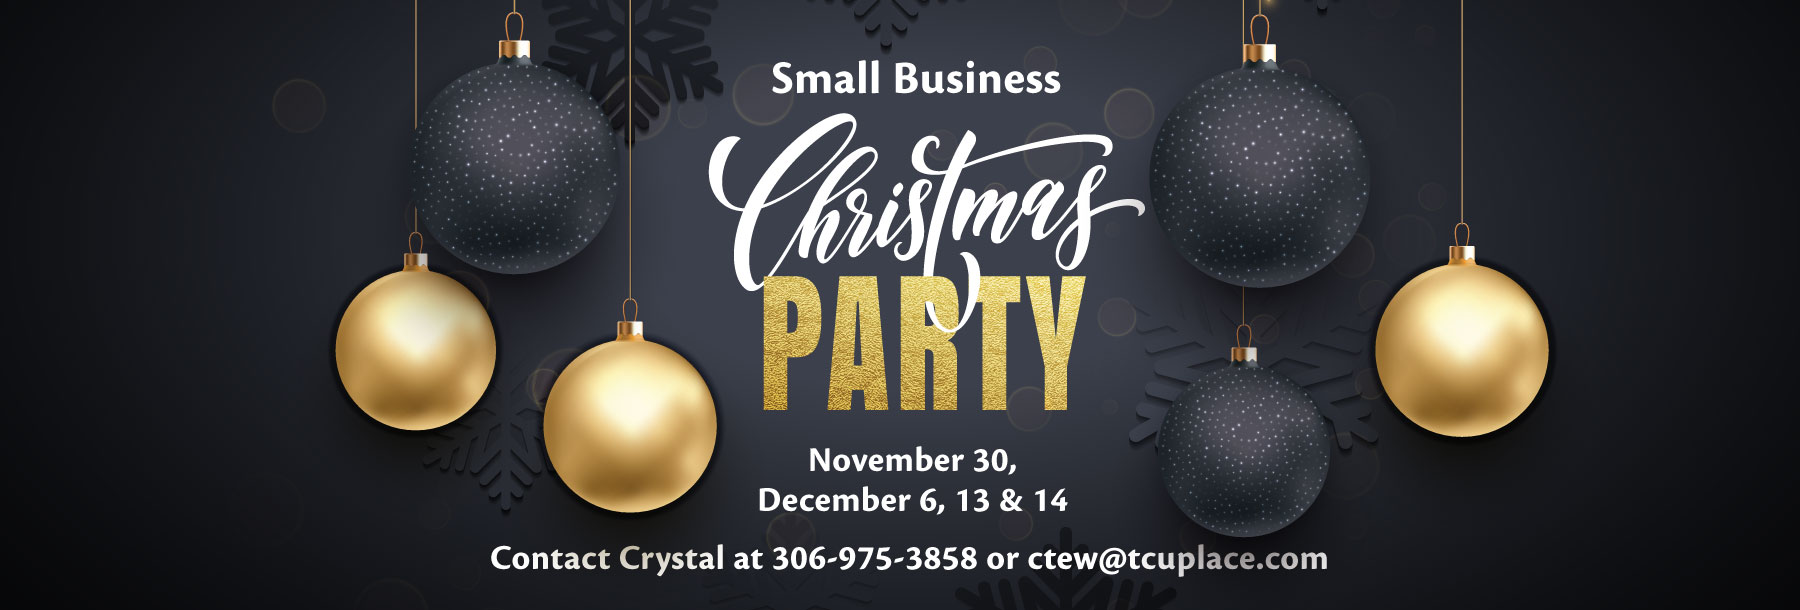 Book Your Small Business Christmas Party - November 30, December 6, 13, & 14